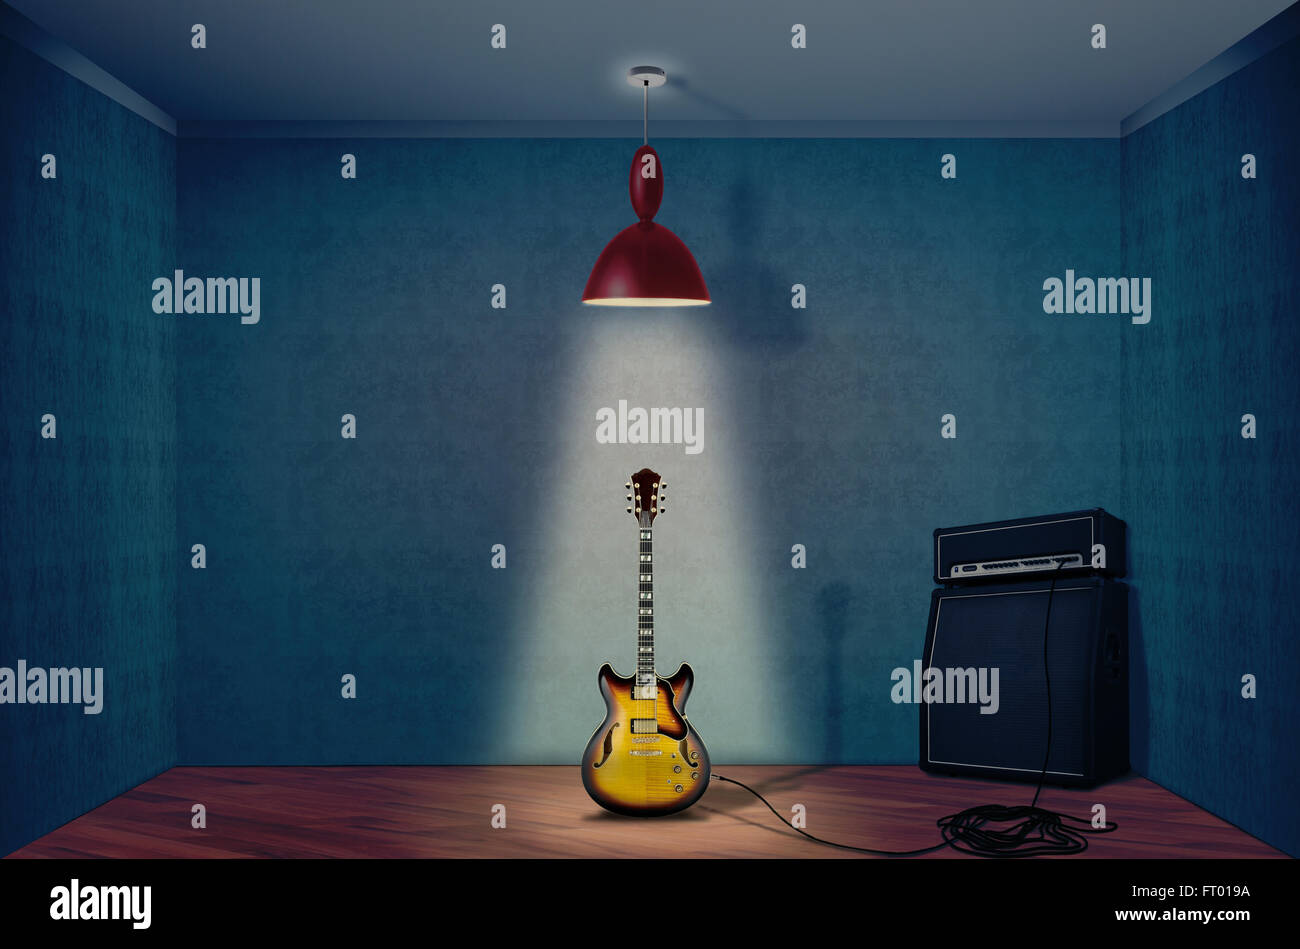 Electric guitar and amplifier - Stock Image